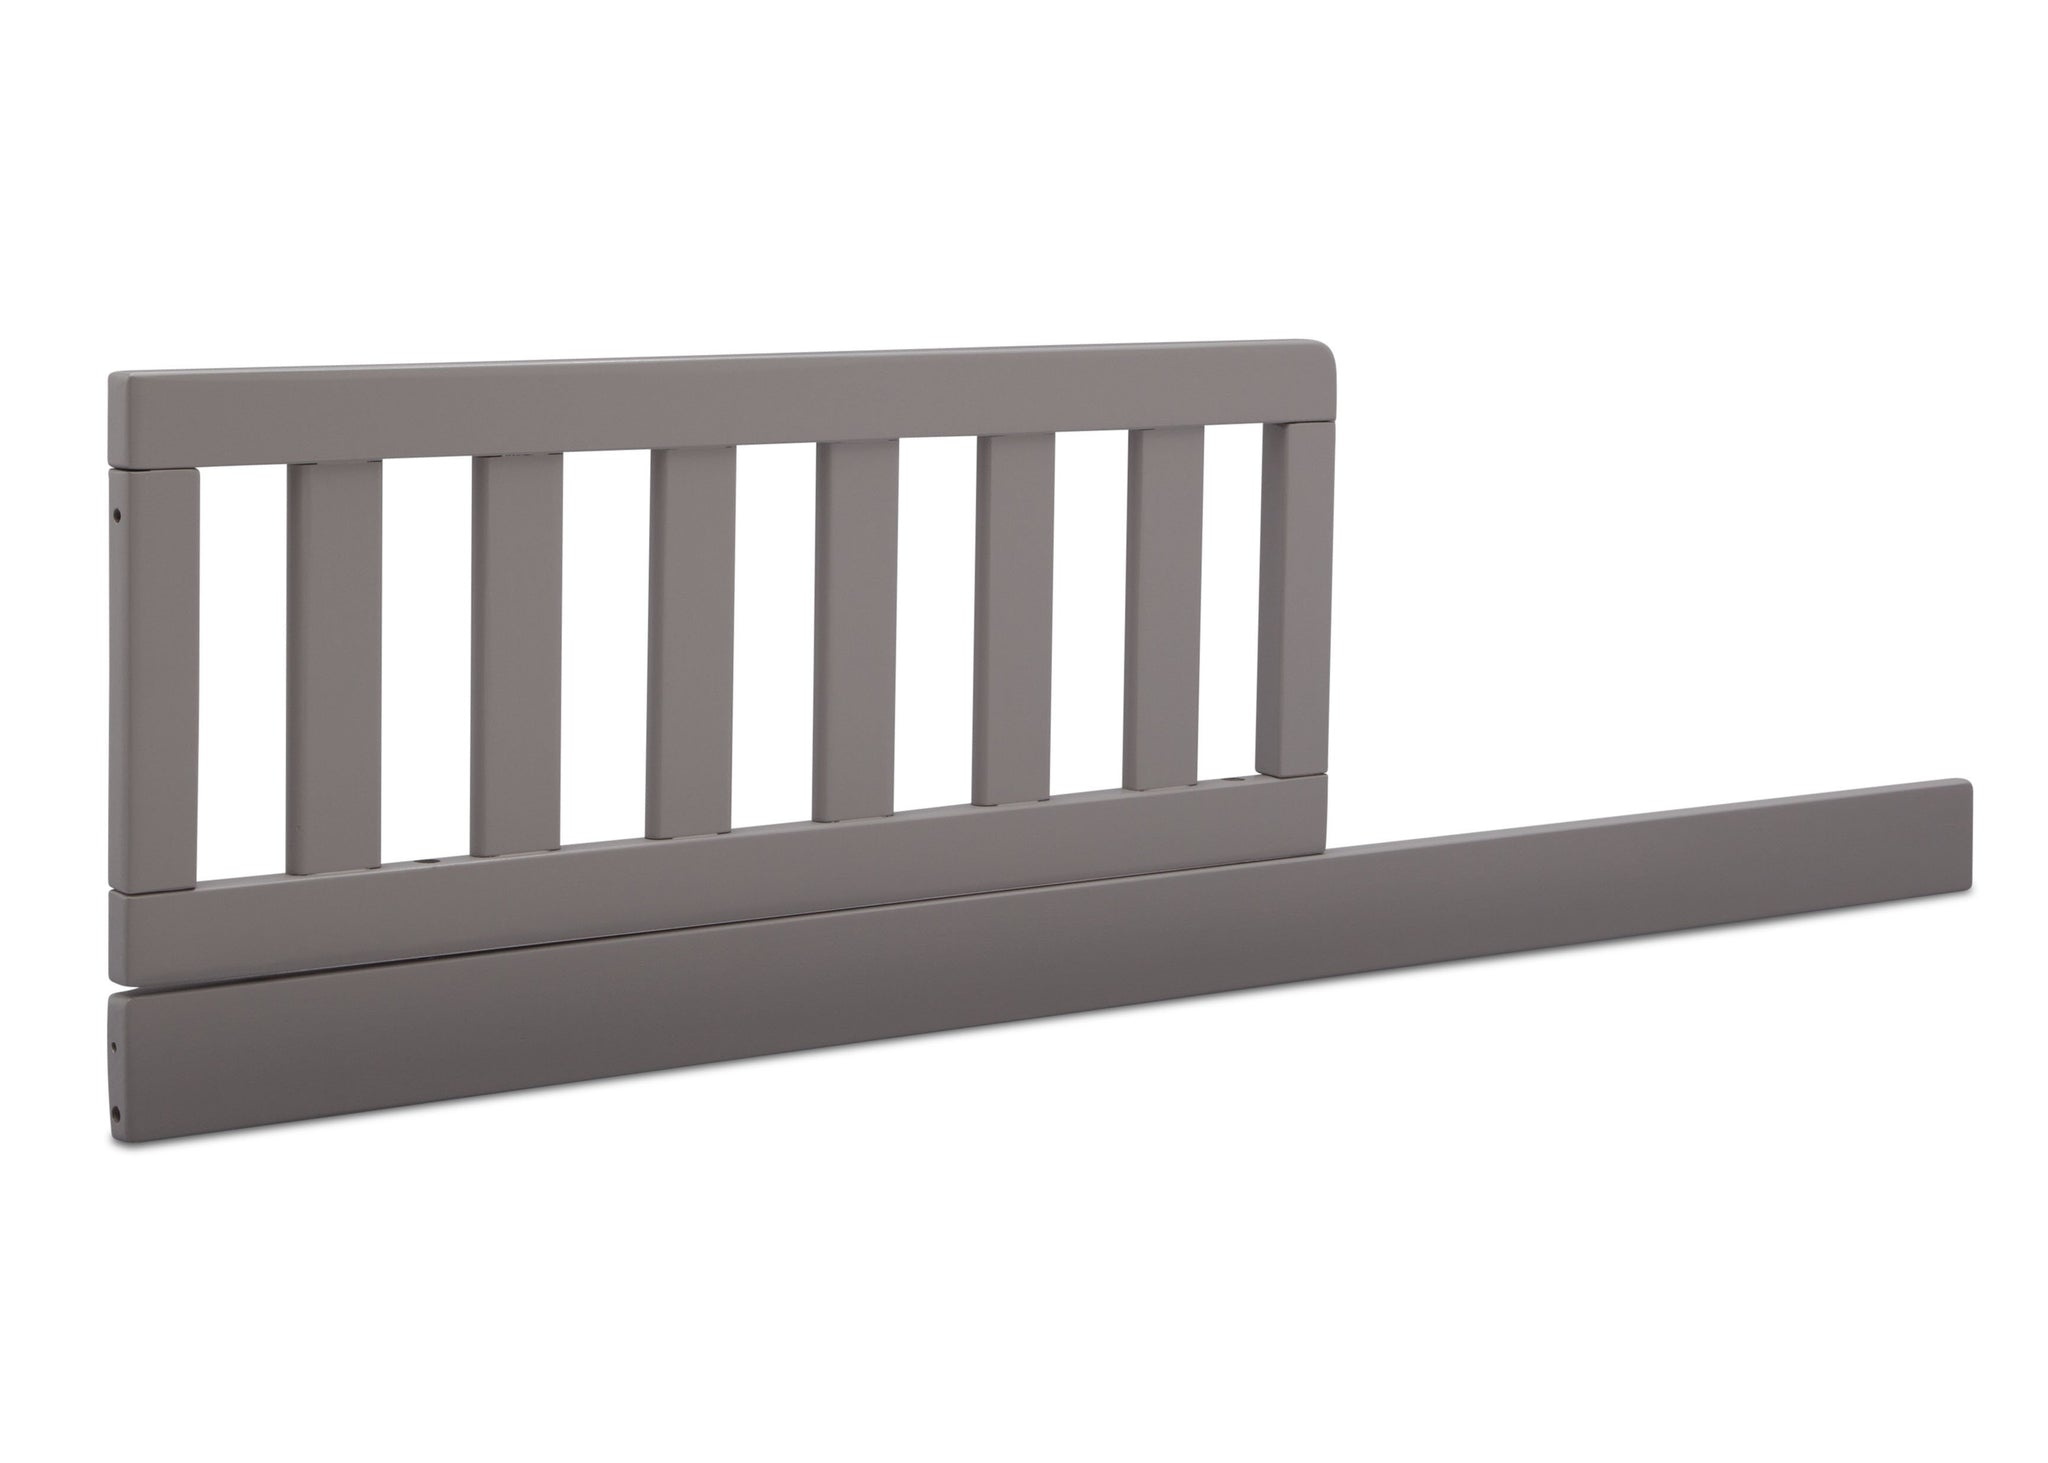 Delta Children Grey (026) Daybed/Toddler Guardrail Kit (553725), Right Angle Daybed, a2a